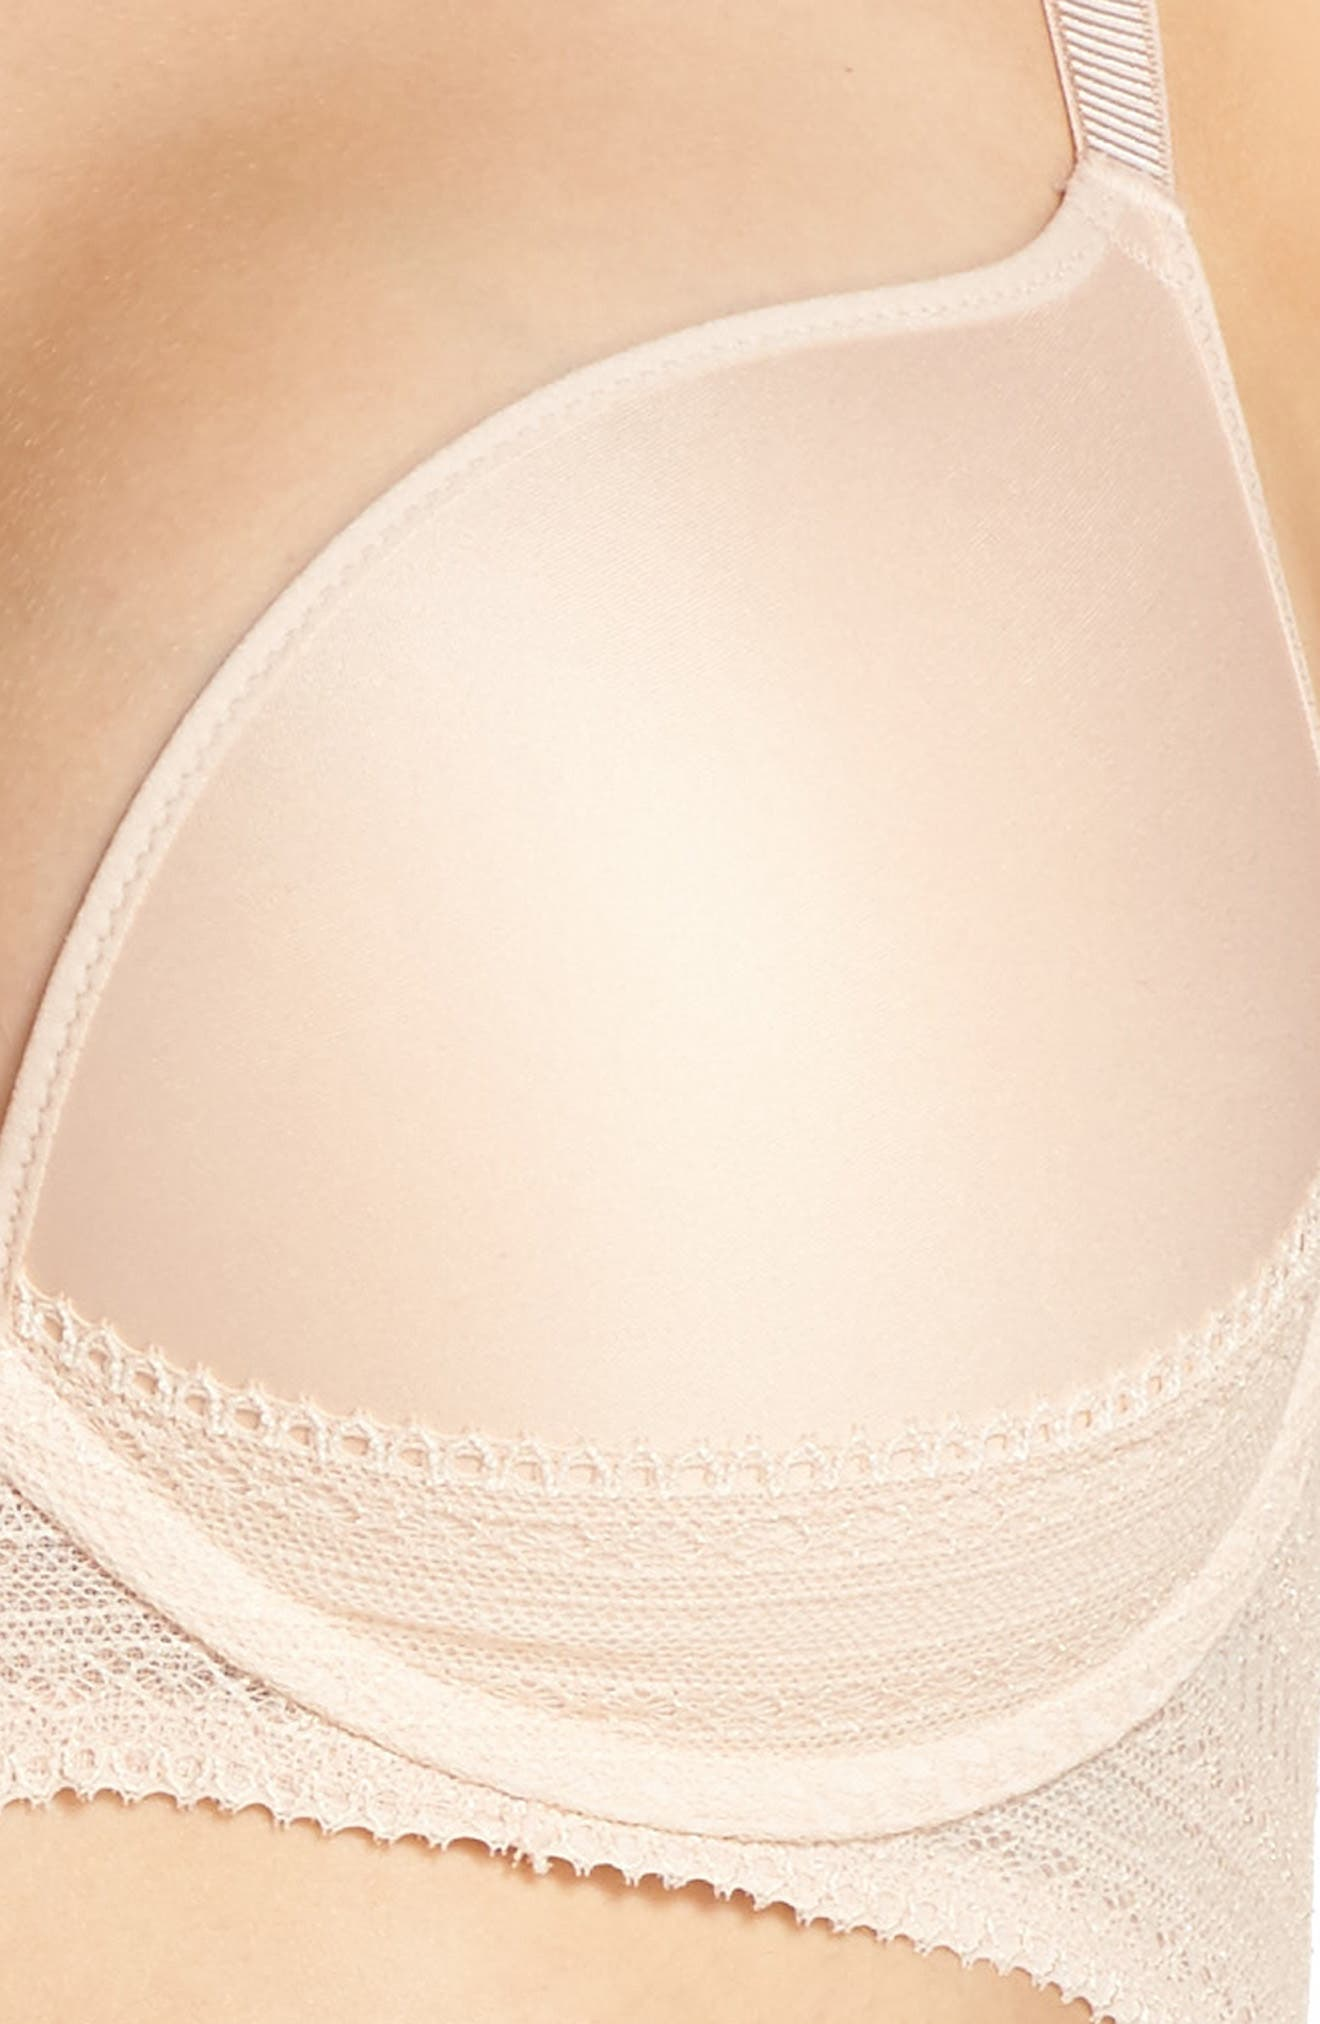 PASSIONATA BY CHANTELLE,                             Cheeky Convertible Underwire Push-Up Bra,                             Alternate thumbnail 5, color,                             268